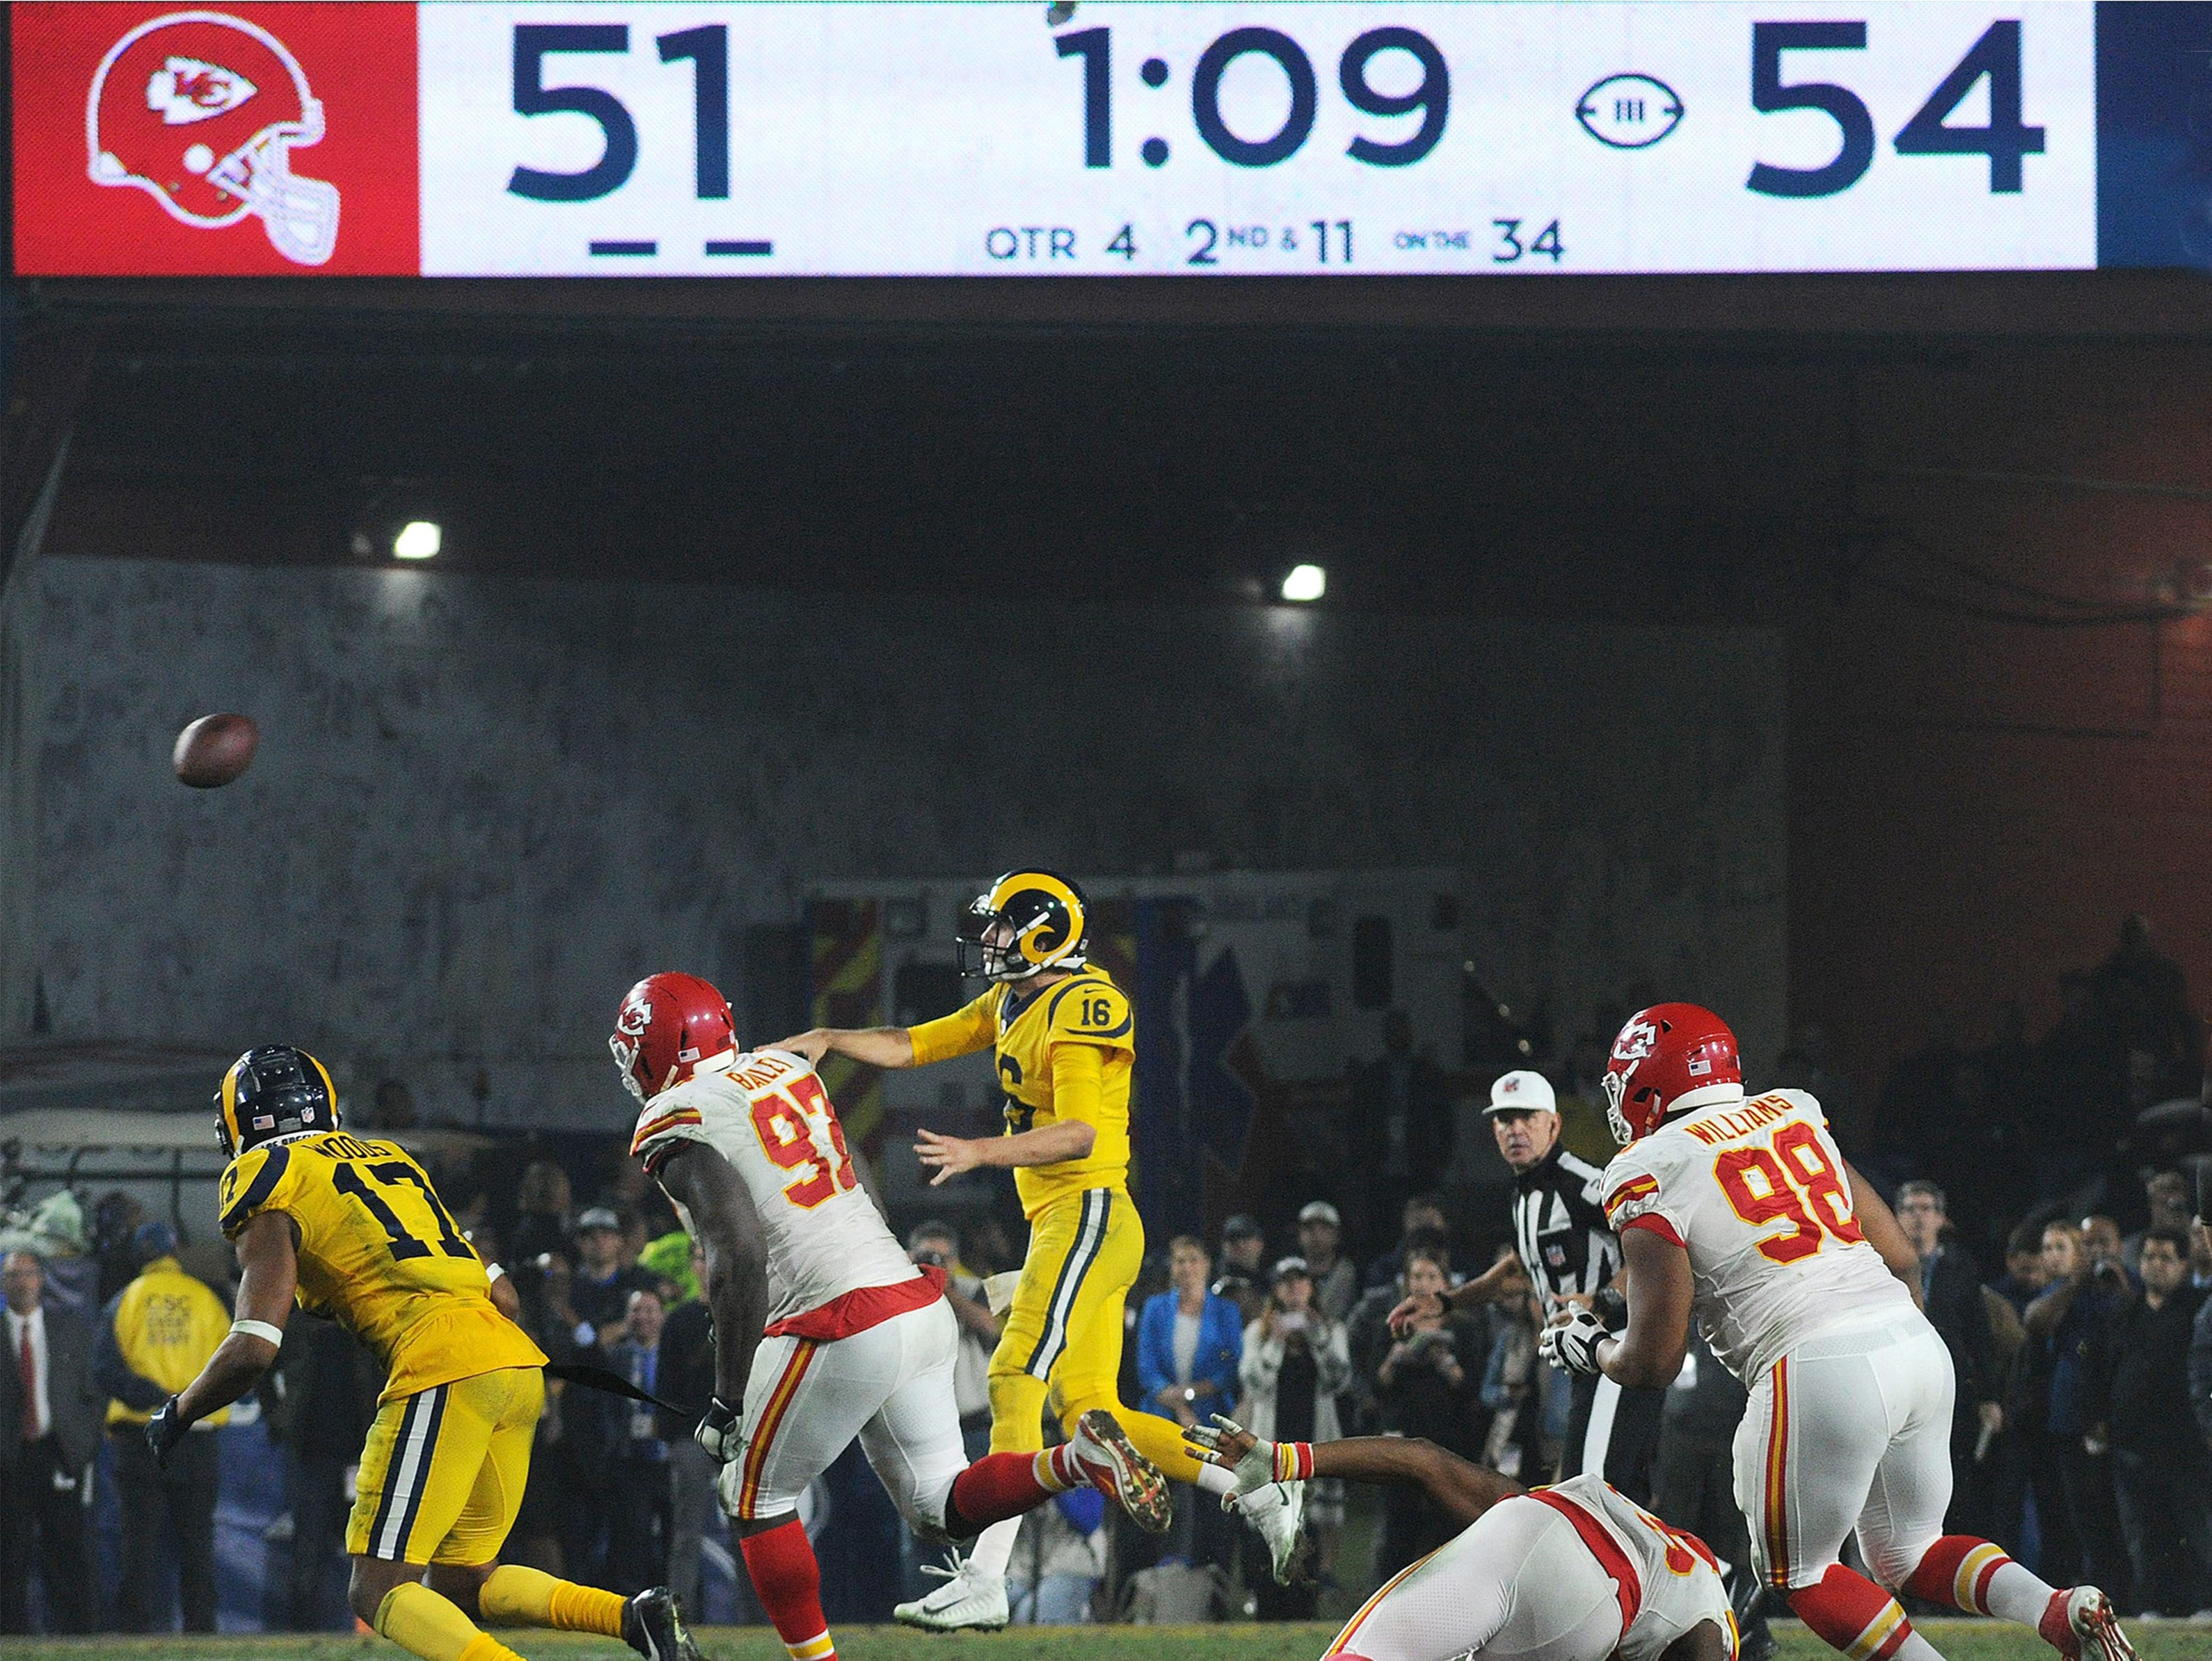 Rams quarterback Jared Goff throws a pass with 1:09 left in the game against the Kansas City Chiefs in a historic 54-51 victory on Monday night. The Rams are now 10-1 with the best record in the NFL. The combined 105 points is the third highest scoring NFL game in history and it marked the only time that two teams ever scored more the 50 points in the same game.